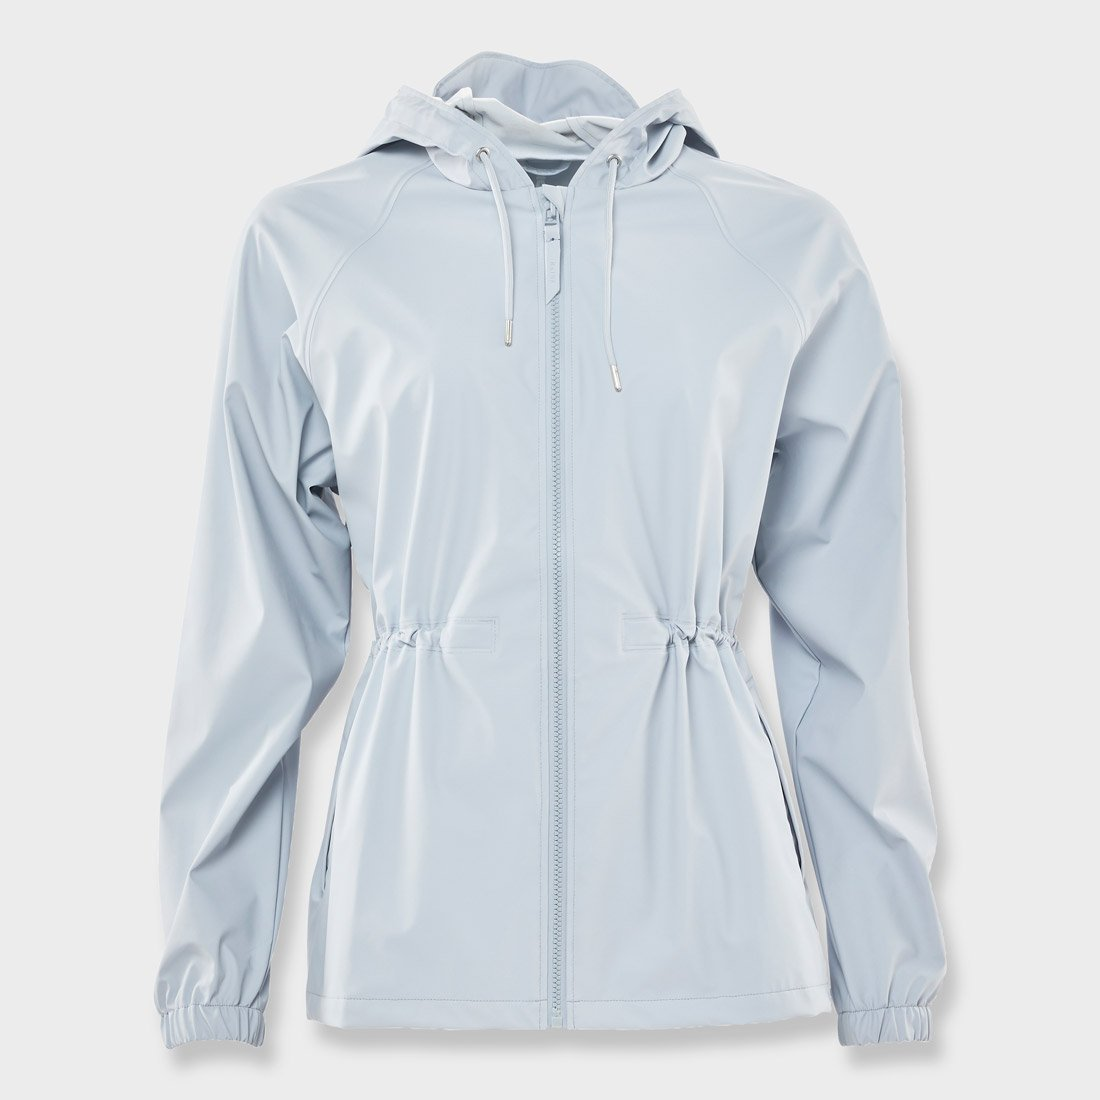 RAINS Women's Jacket Ice Grey